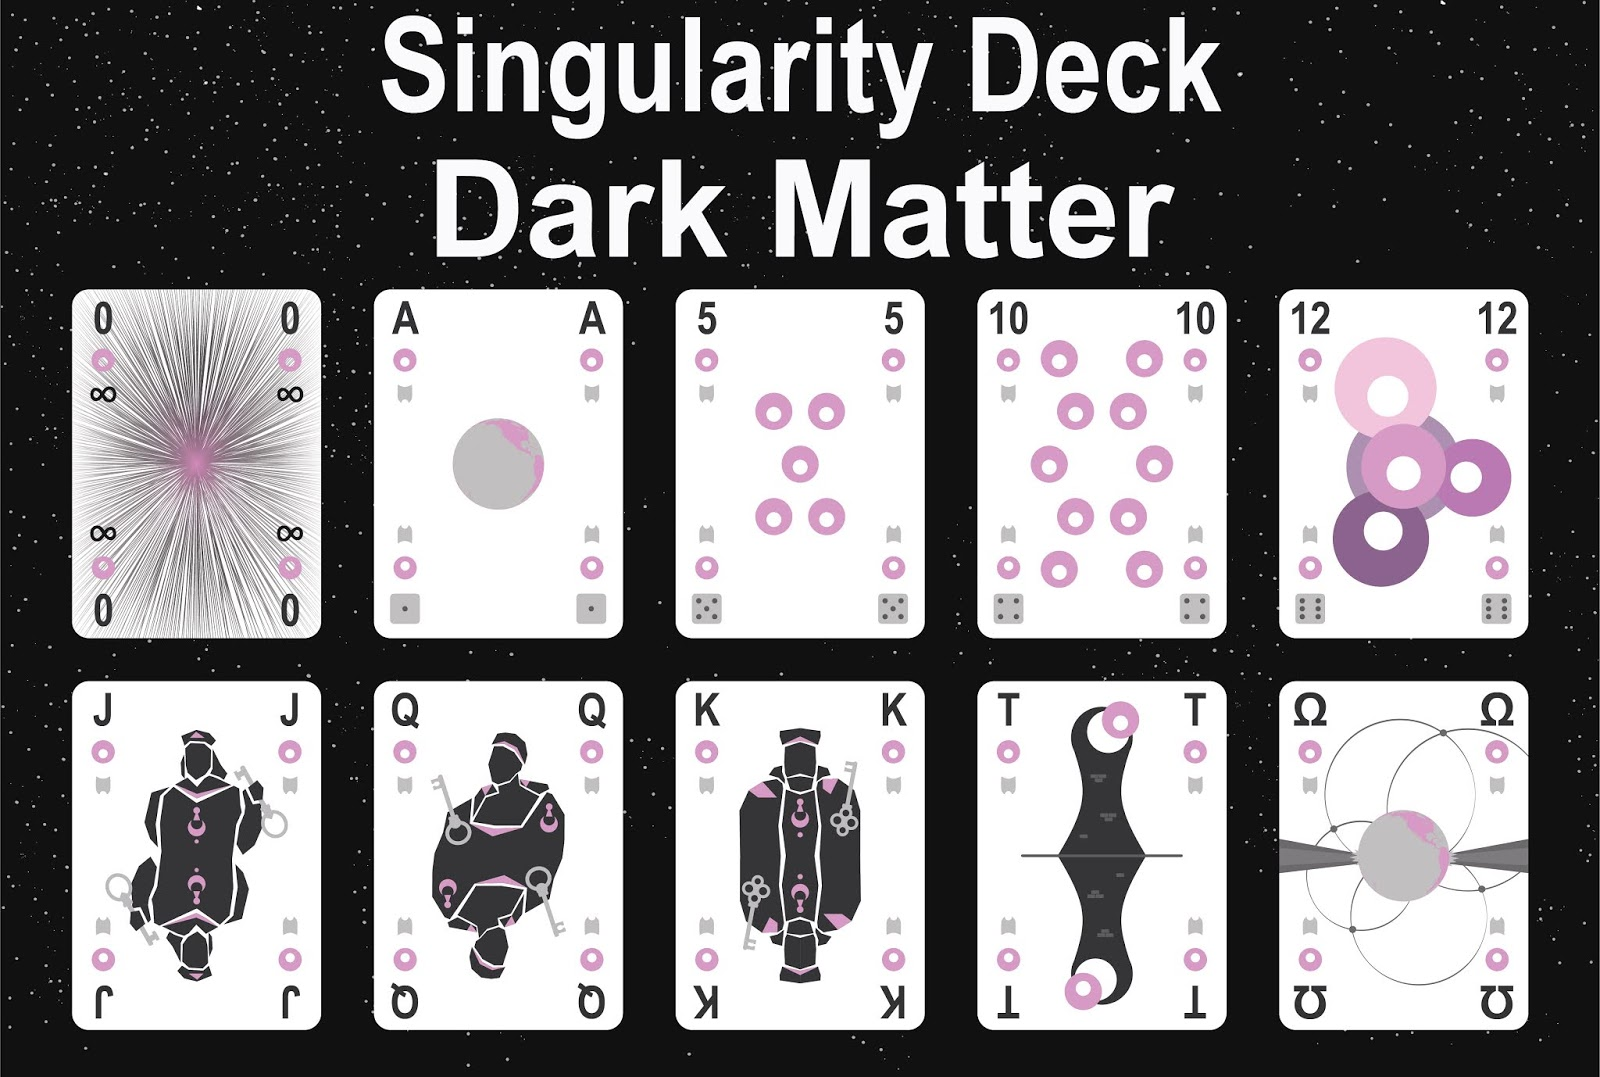 The Singularity Deck - Dark Matter Art